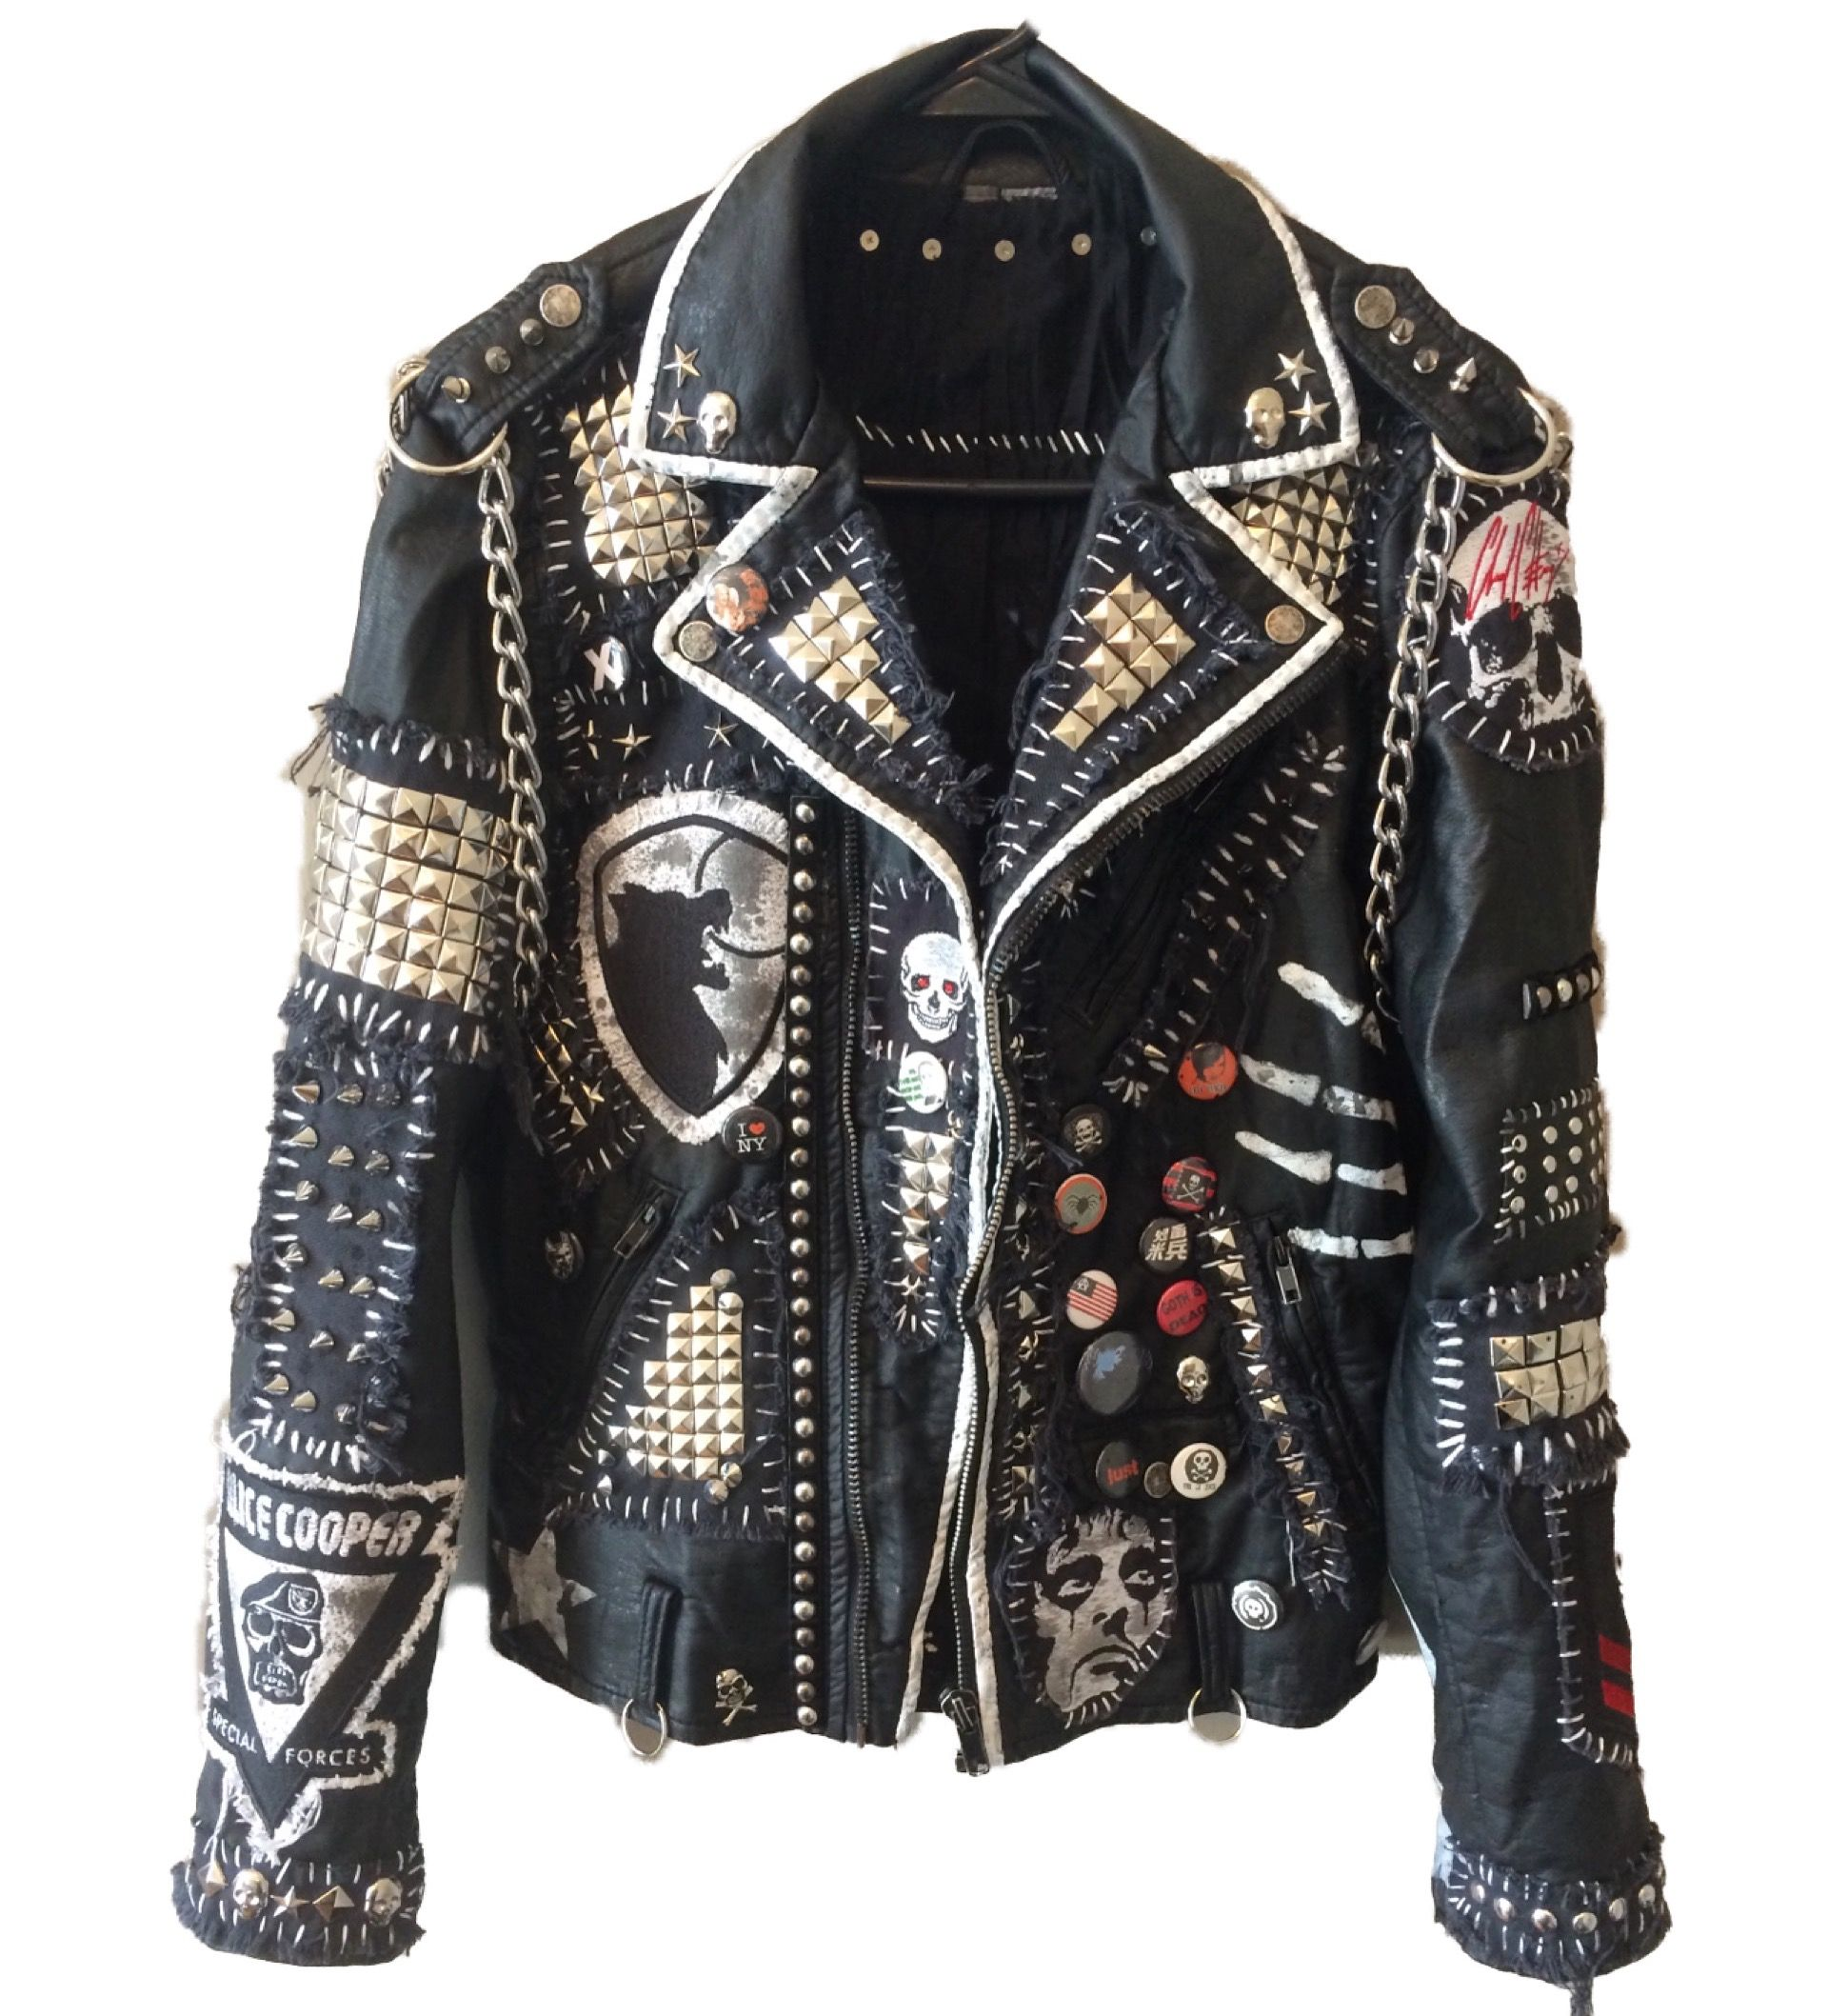 Vampire Empire jacket by Chad Cherry. Distressed, punk rock, heavy metal,  studded, spiked, custom jackets from ChadCherryClothing. d95f2a3252